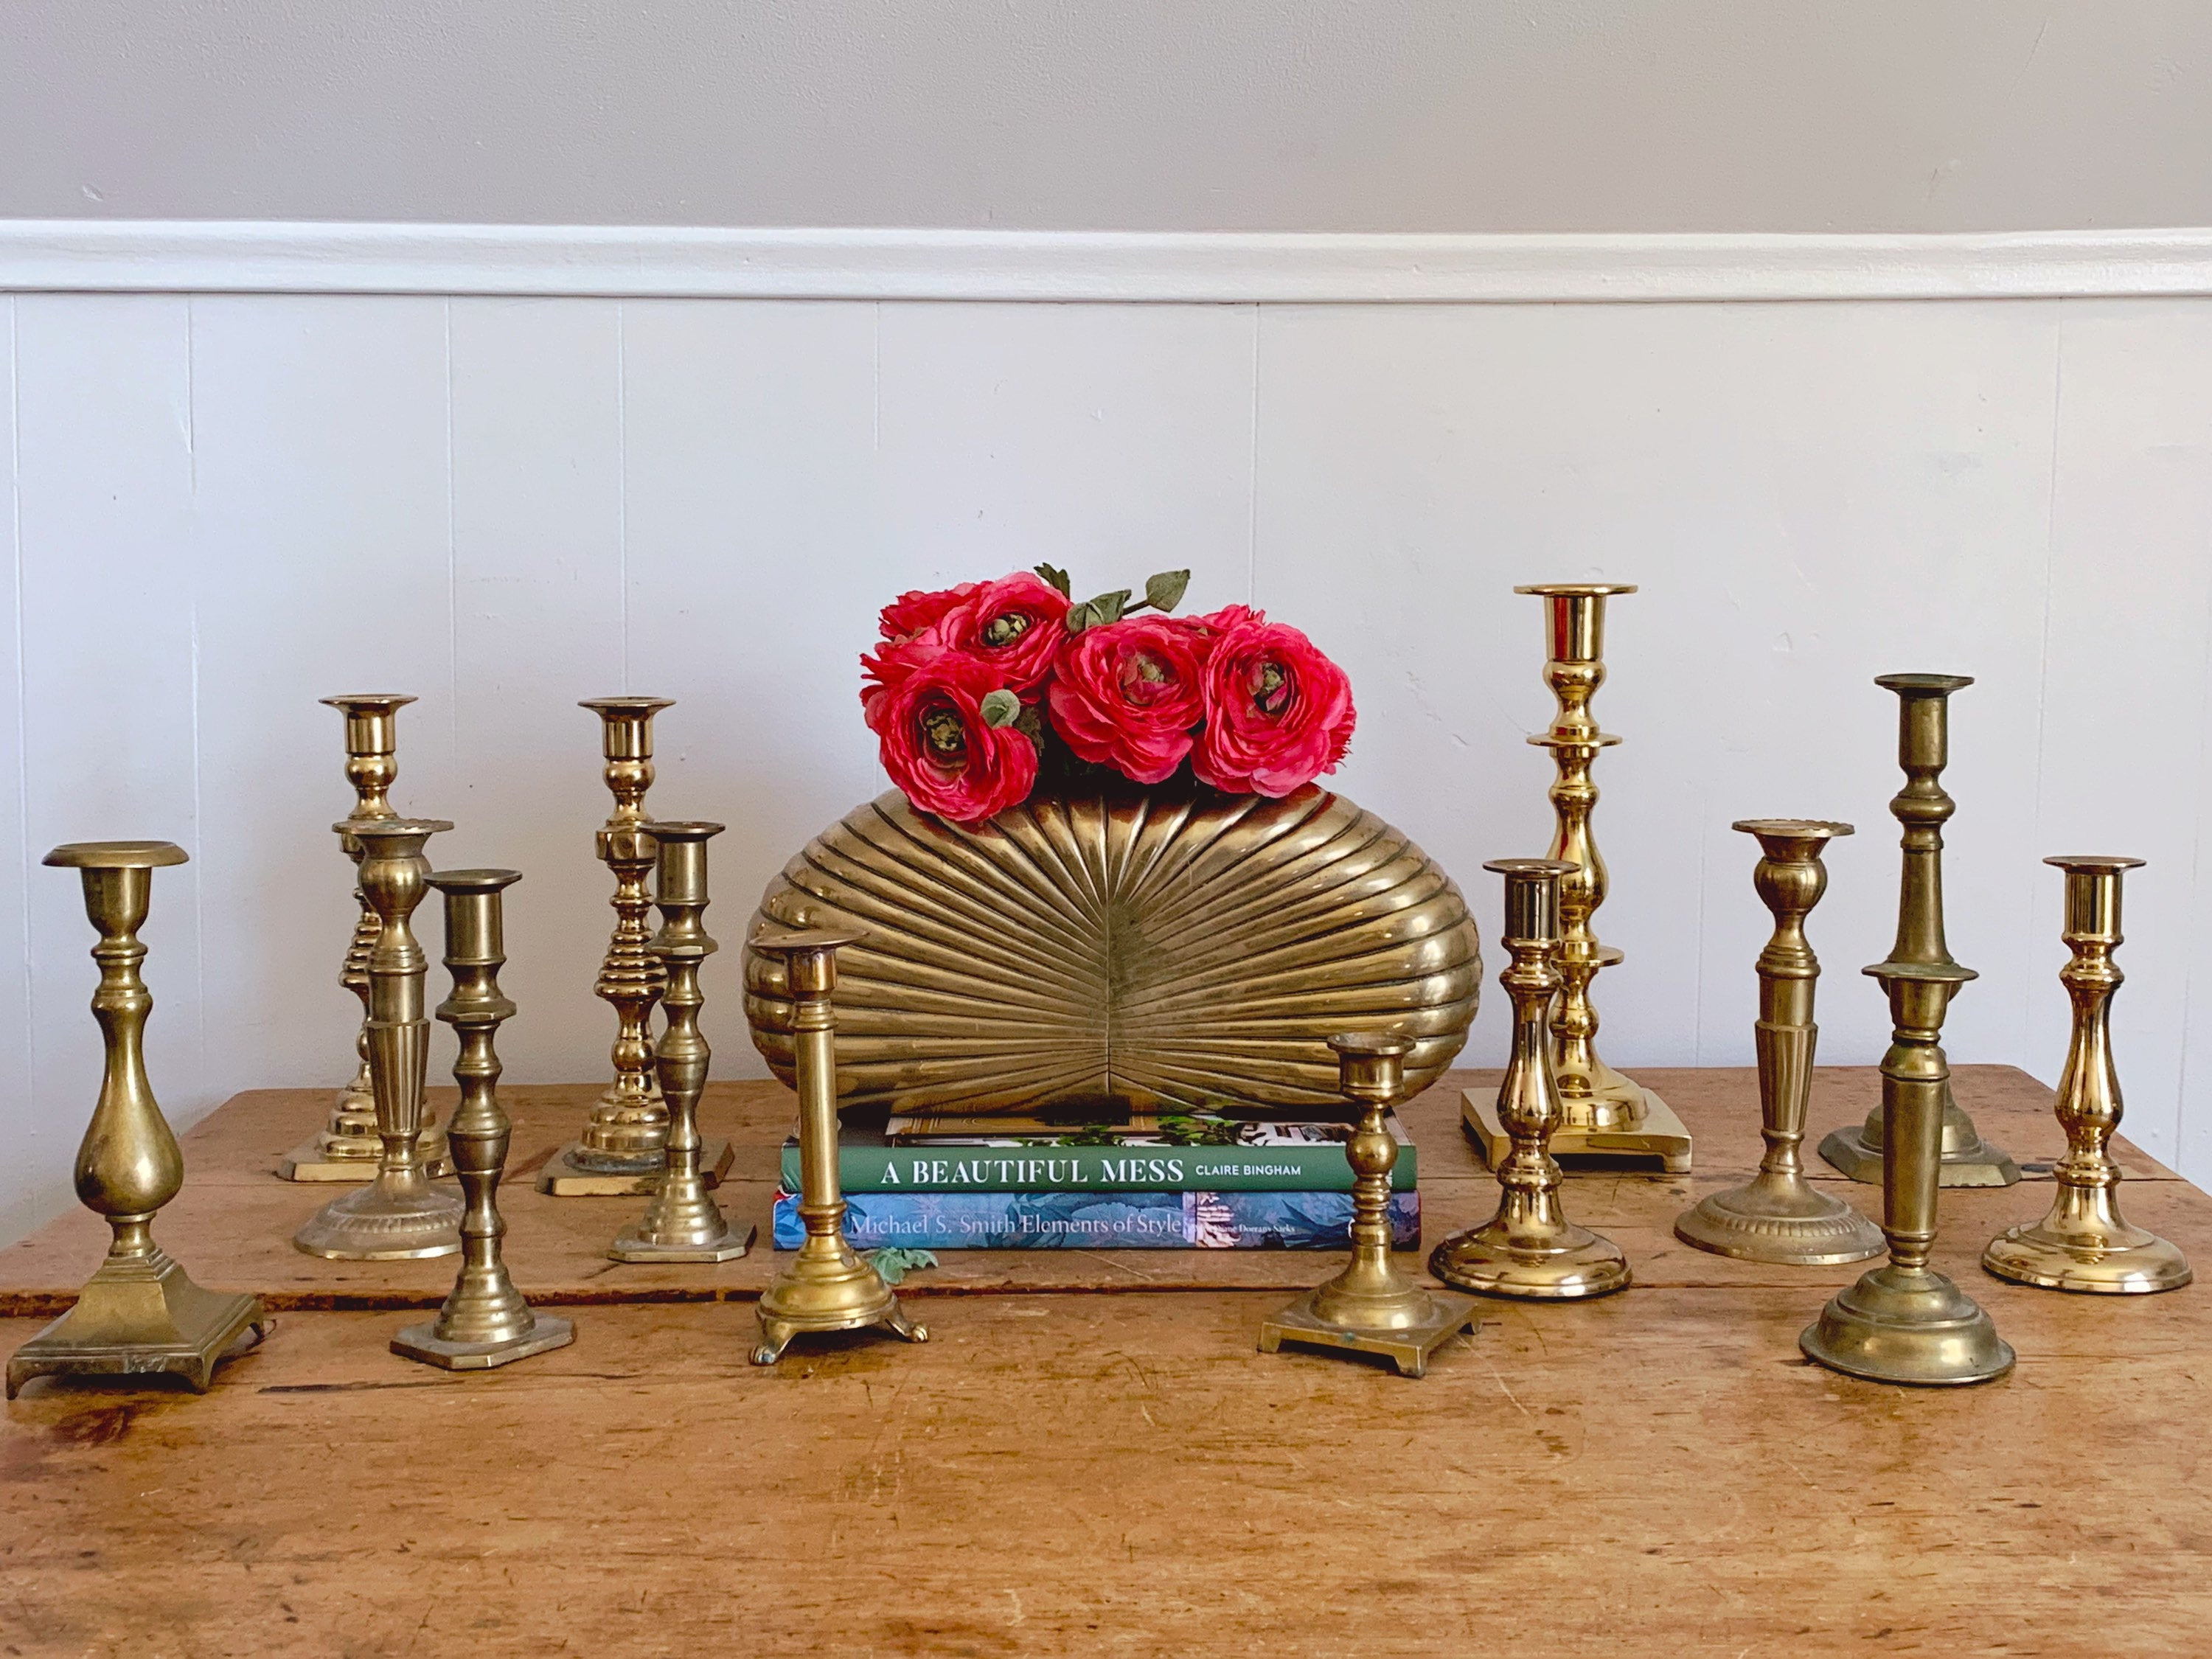 Assorted Pairs of Vintage Brass Taper Candle Holders | Antique Candlesticks Farmhouse Home Decor Wedding Decor Tablesetting